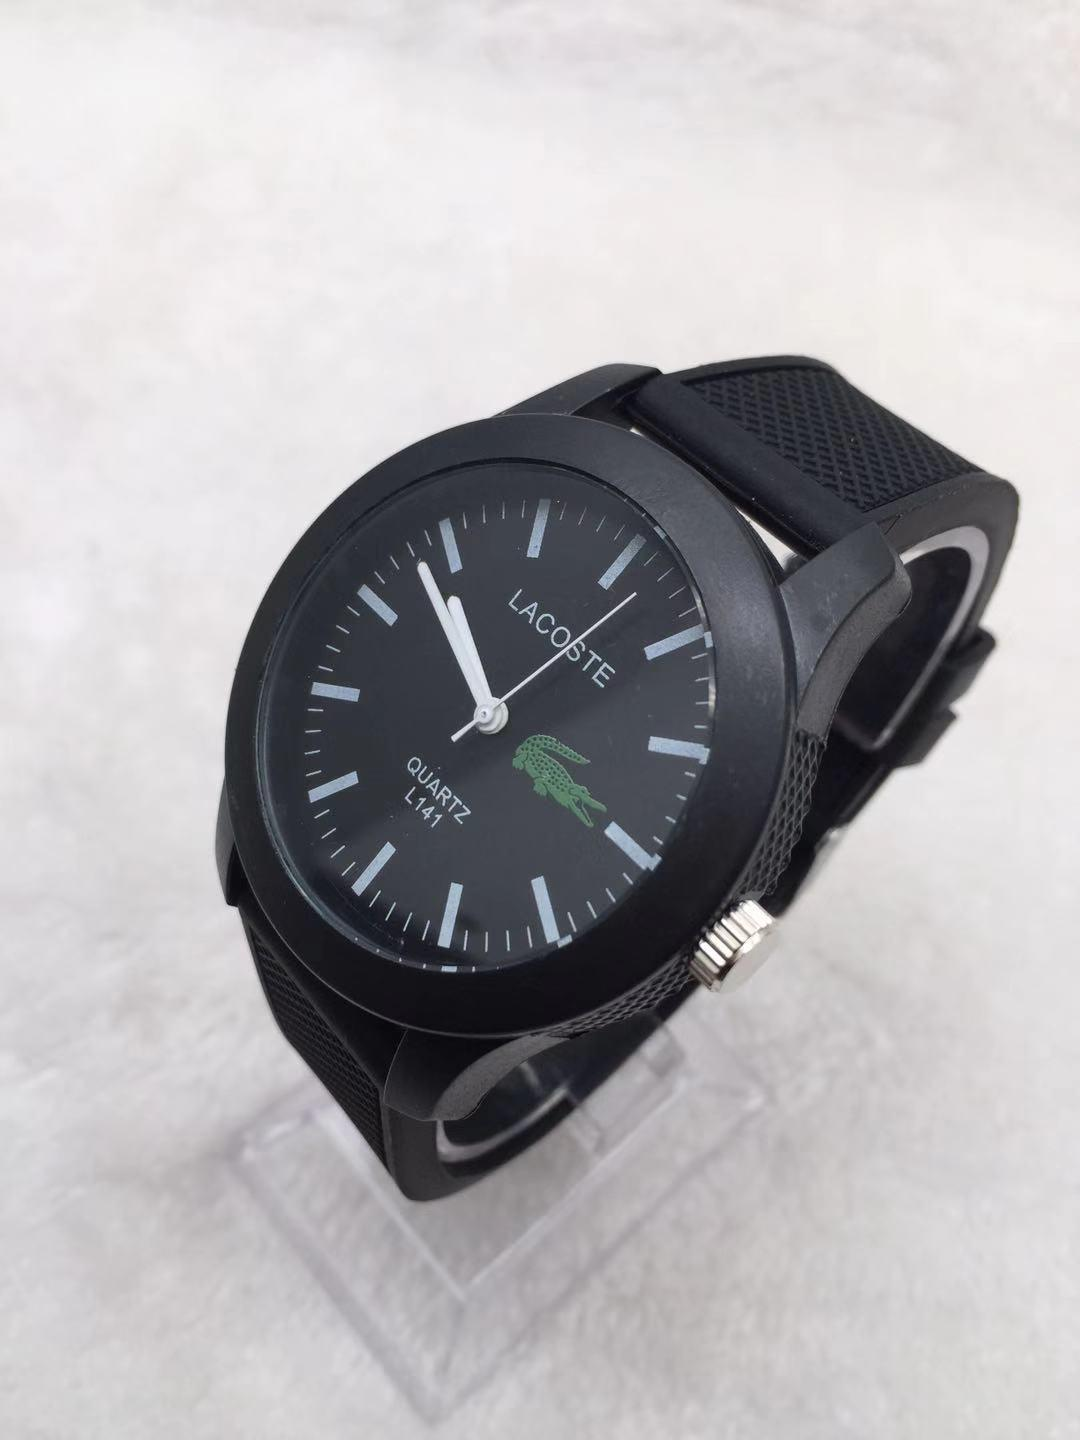 Lcmall New Lacoste Simple Leisure Fashion Exquisite Watch F6 L203 L141